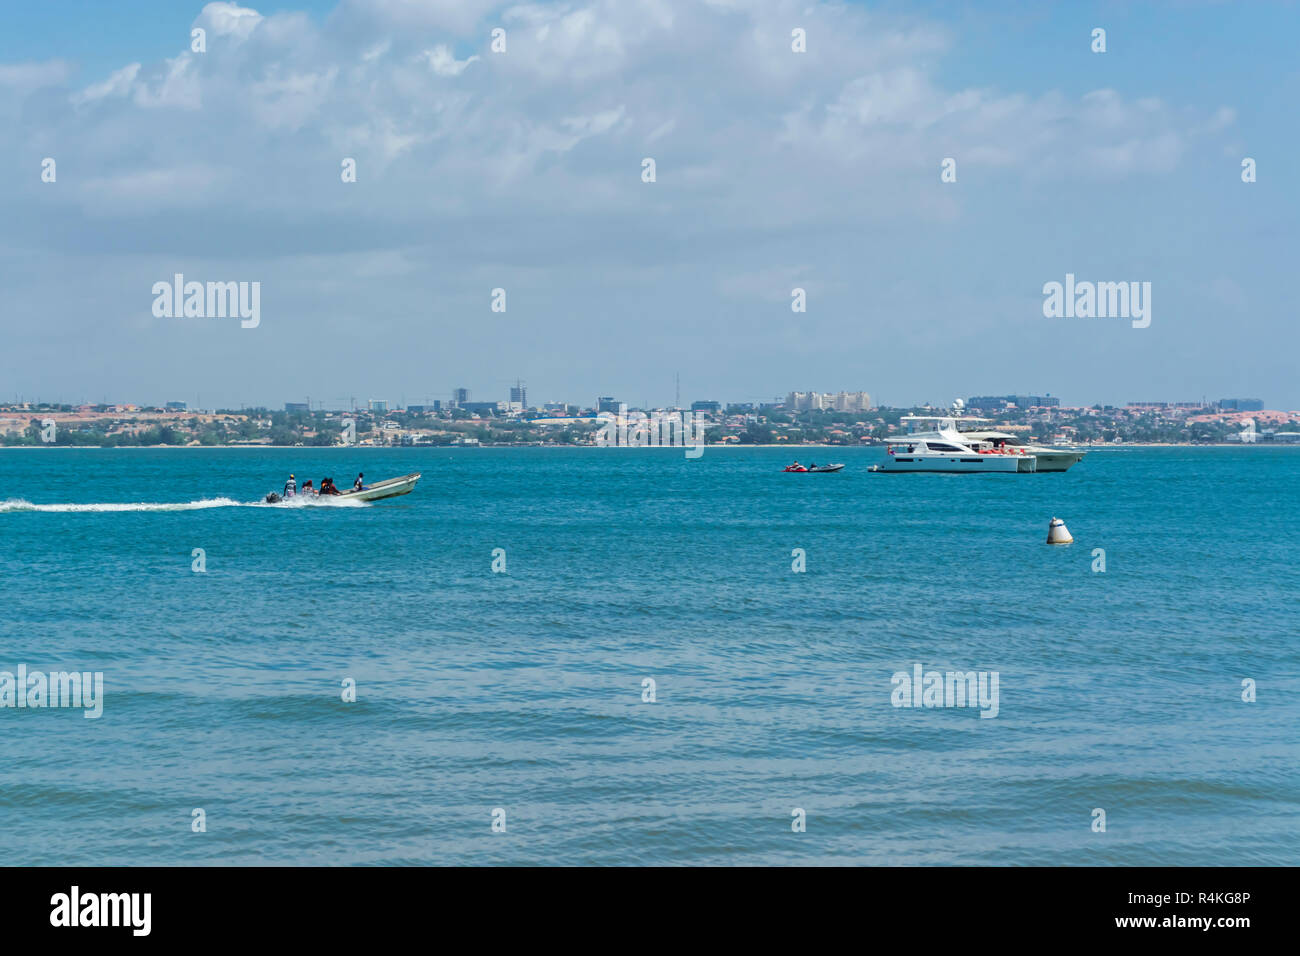 View at the beach and boats on water, on the Mussulo Island, Luanda, Angola - Stock Image